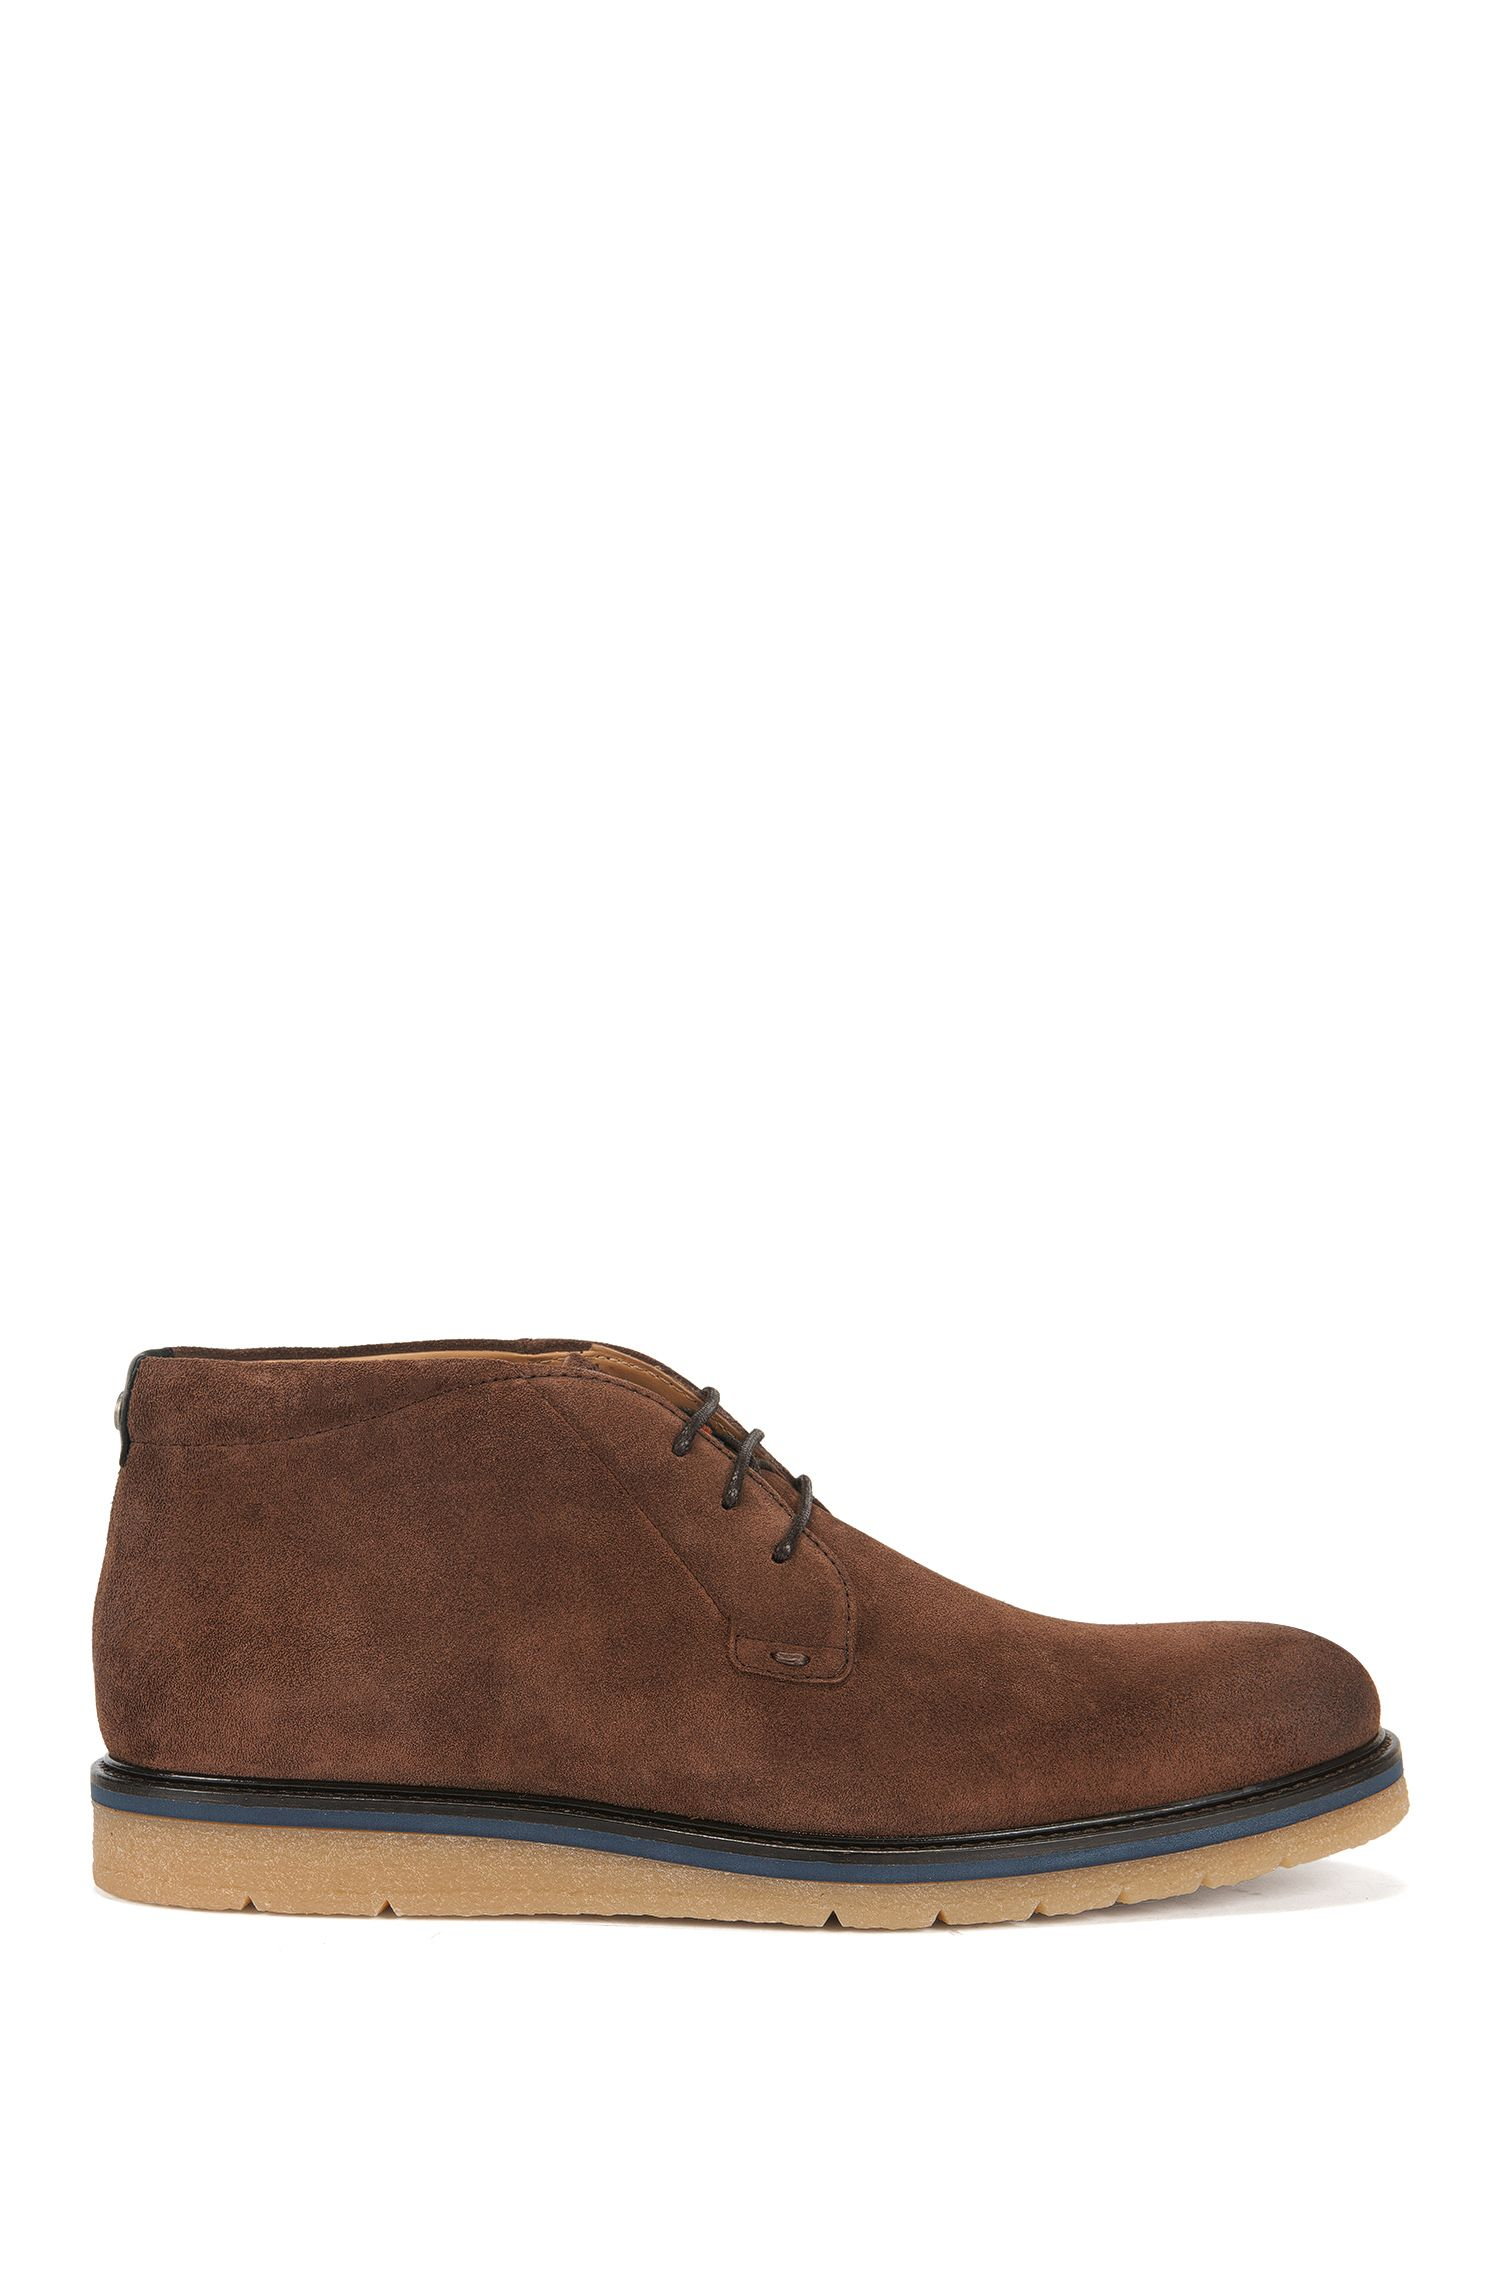 Desert boots in washed suede